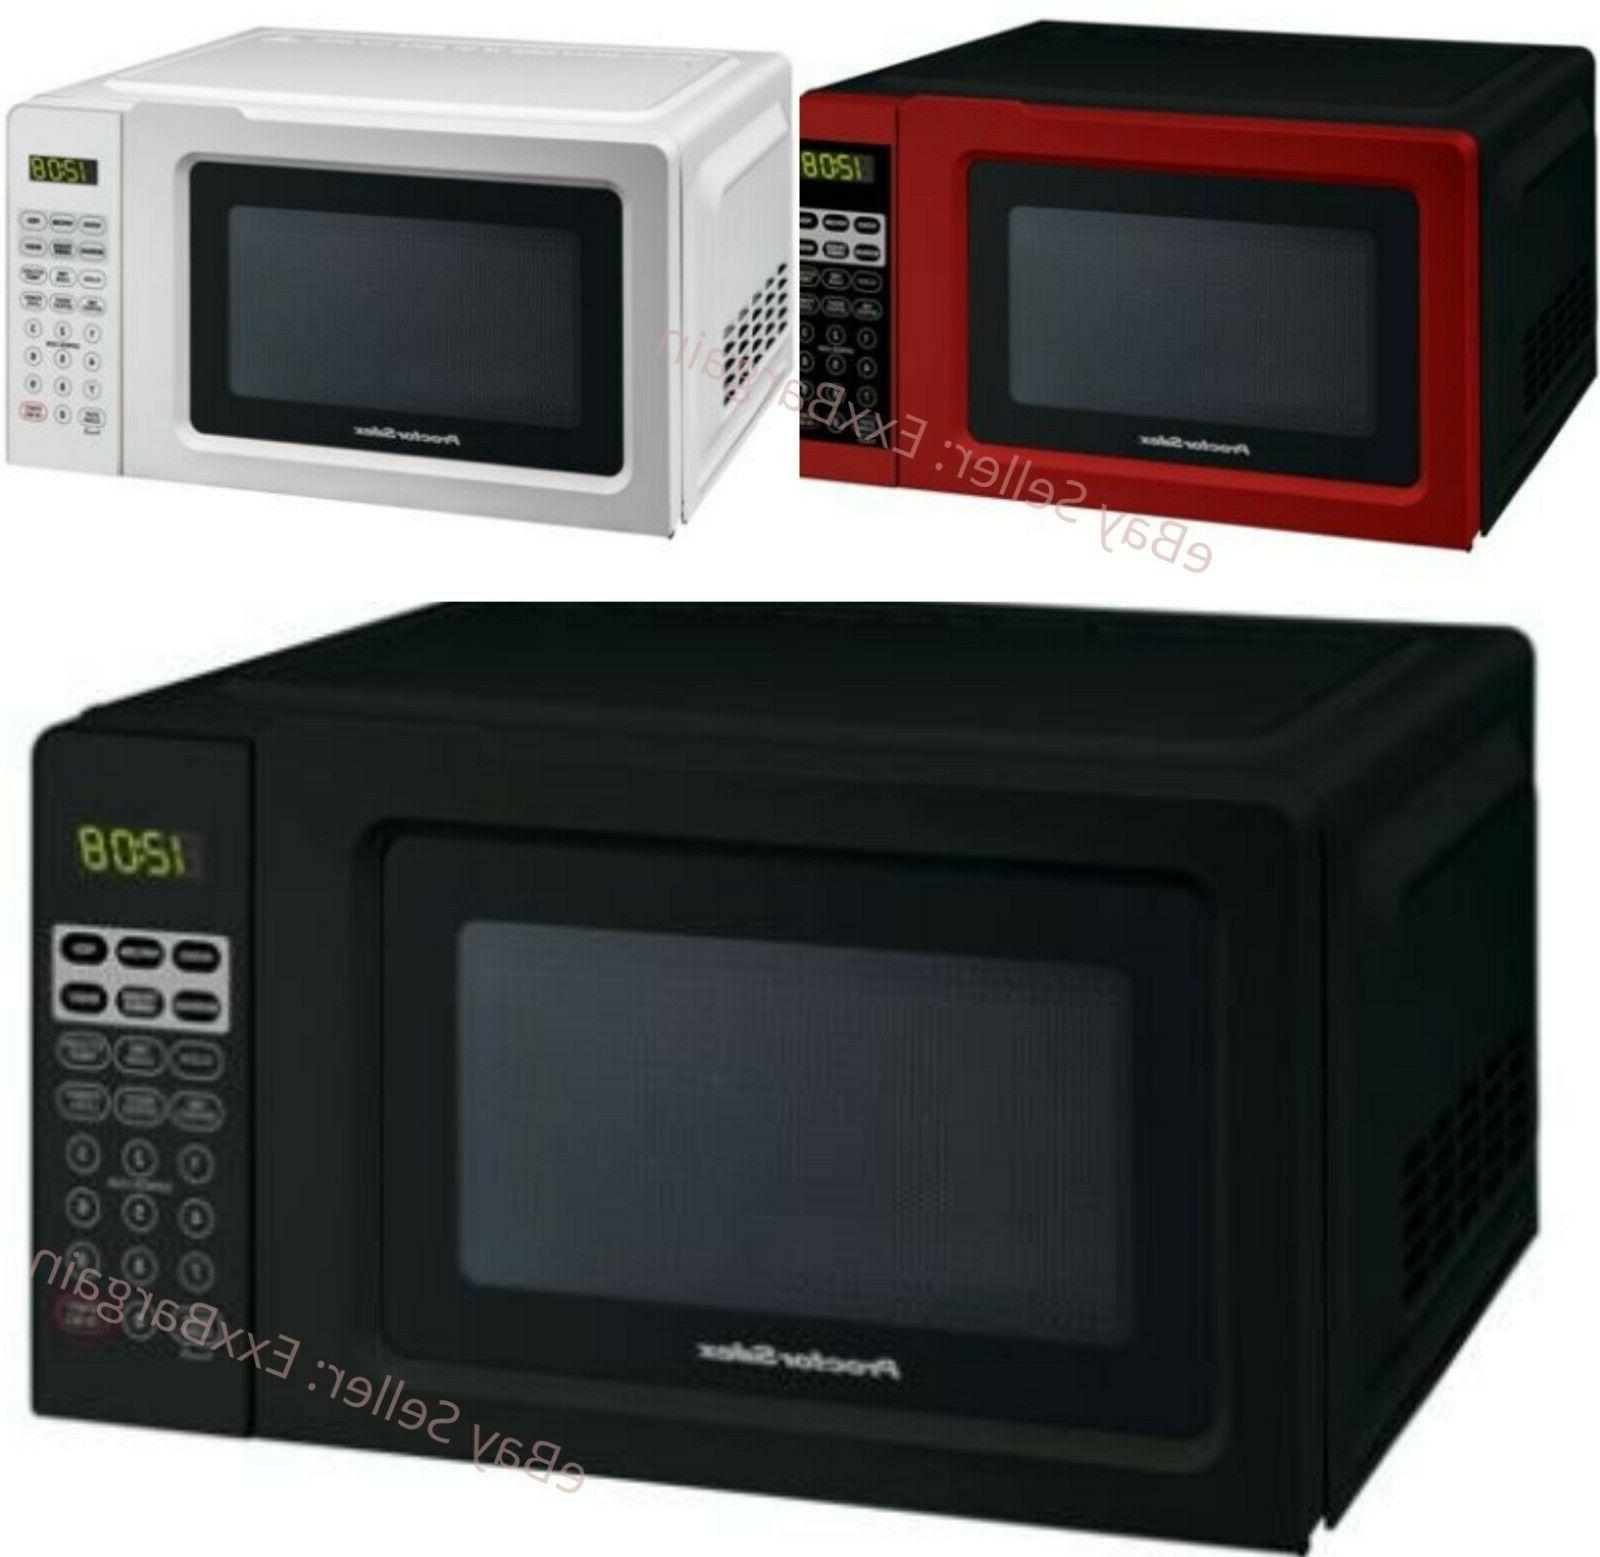 Countertop Kitchen Digital LED Microwave 0.7 700W New